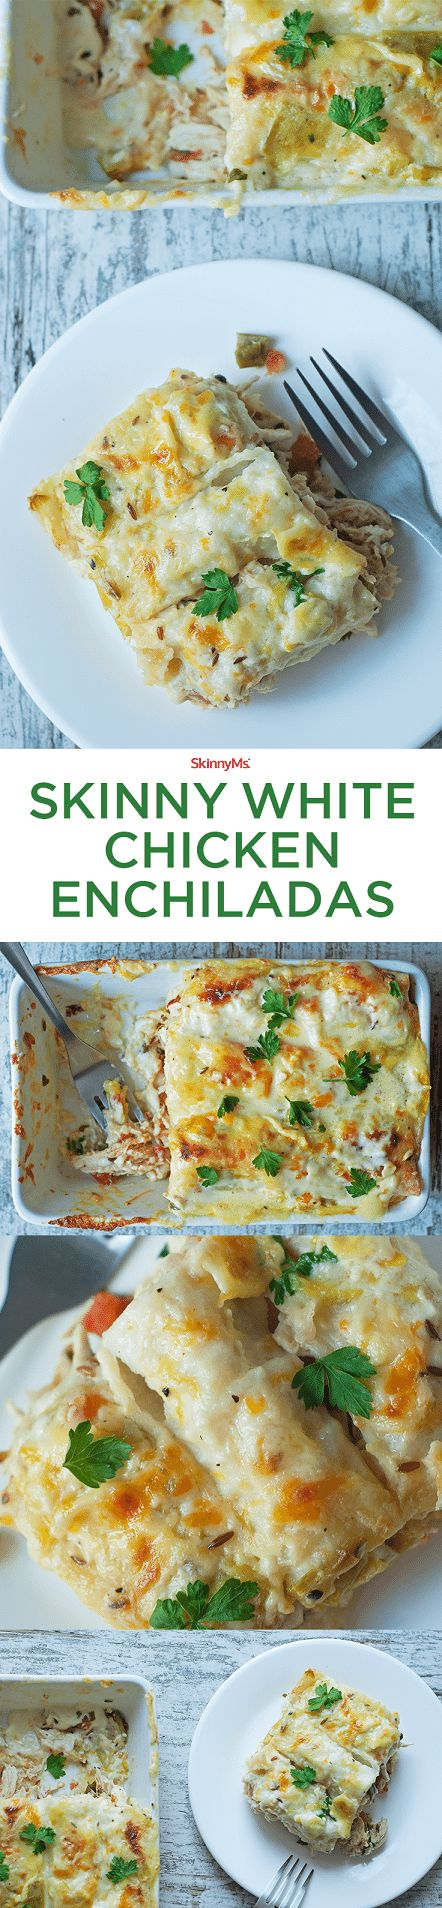 Flavorful chicken wrapped in tortillas and smothered in a rich, creamy sauce sounds like a dieter's nightmare, but it doesn't have to be! via @SkinnyMs